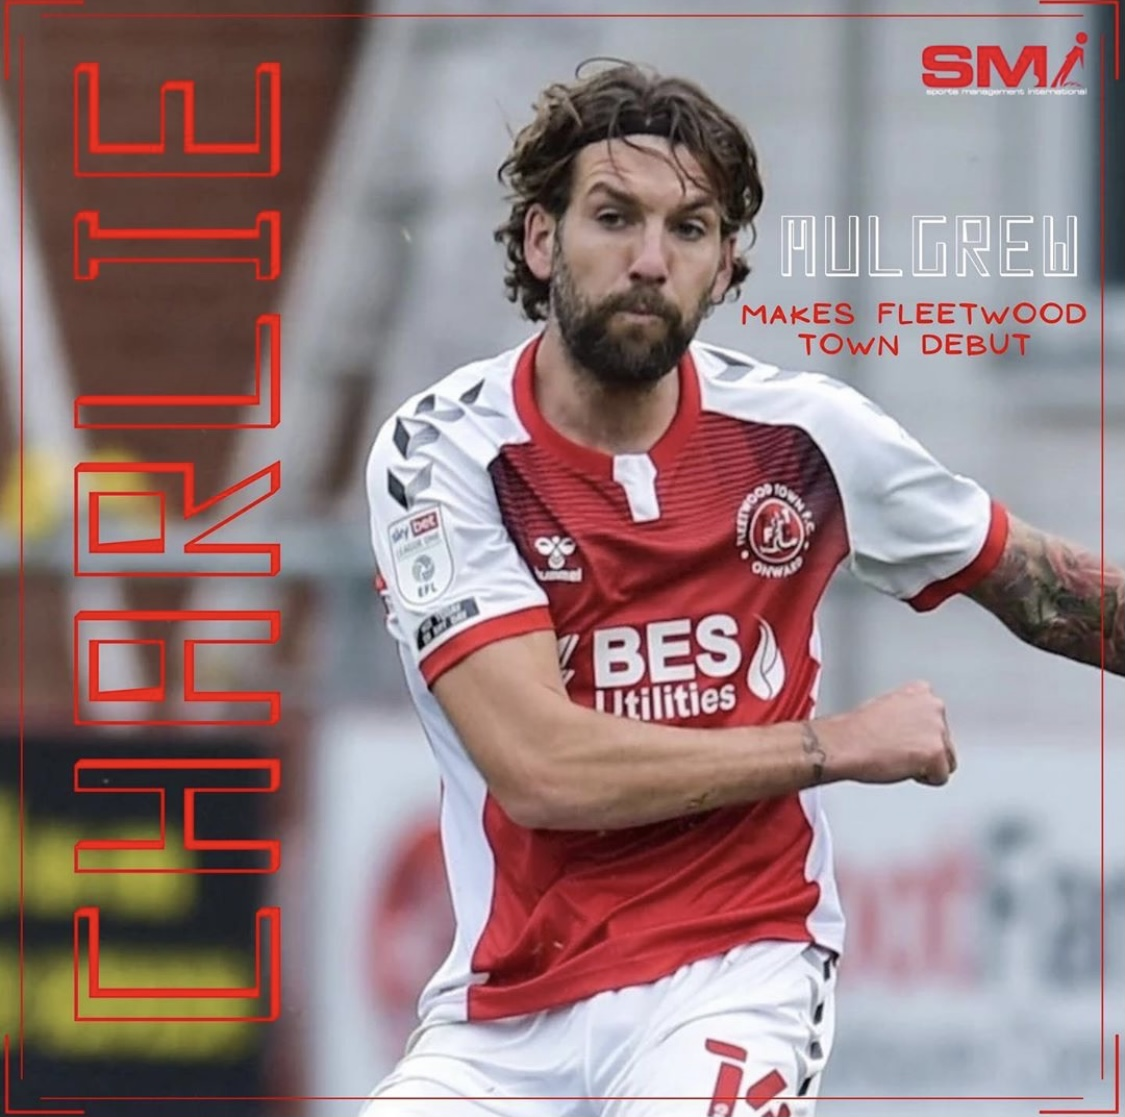 Mulgrew makes Fleetwood debut